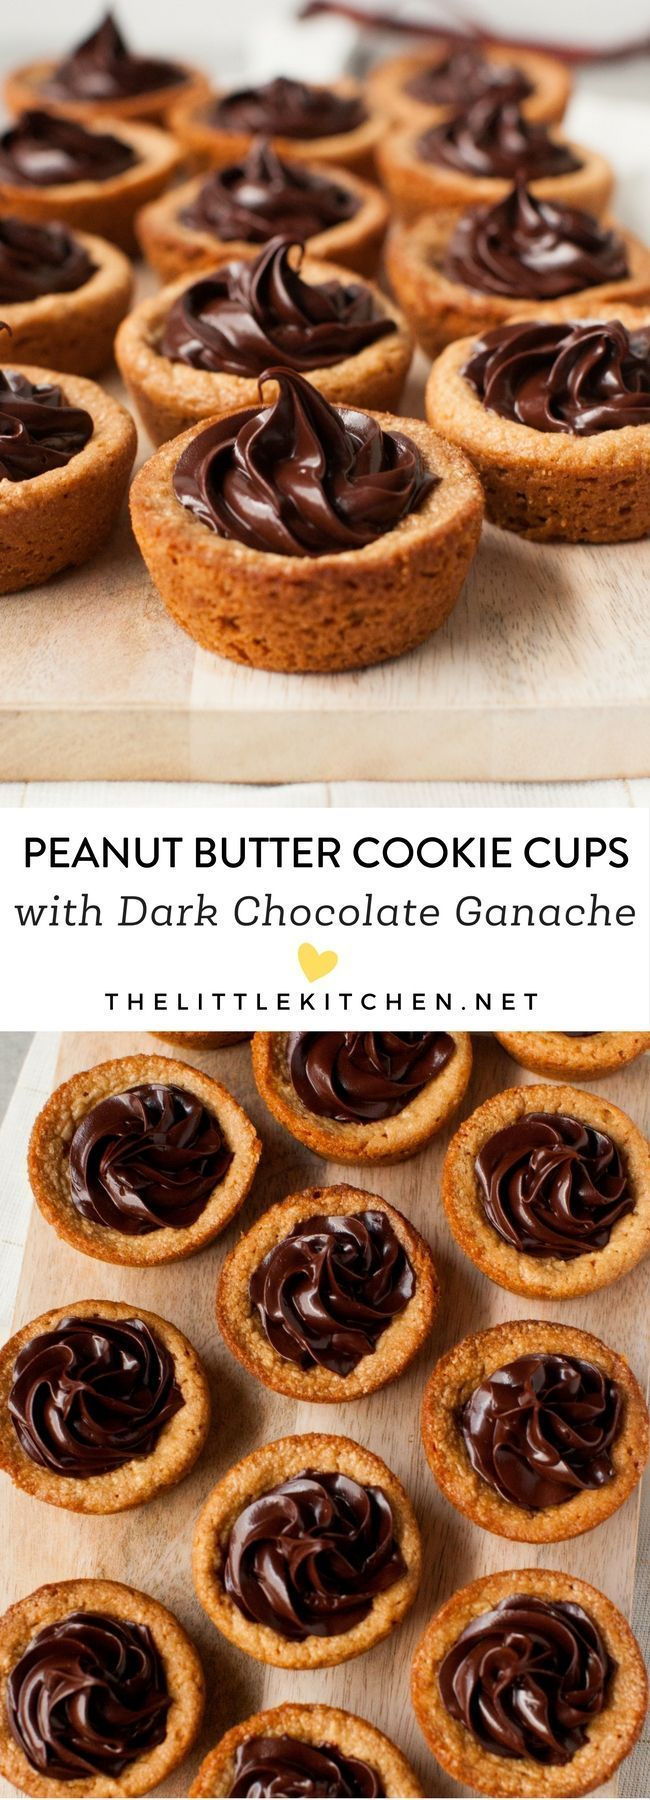 Peanut Butter Cookie Cups with Dark Chocolate Ganache from http://thelittlekitchen.net